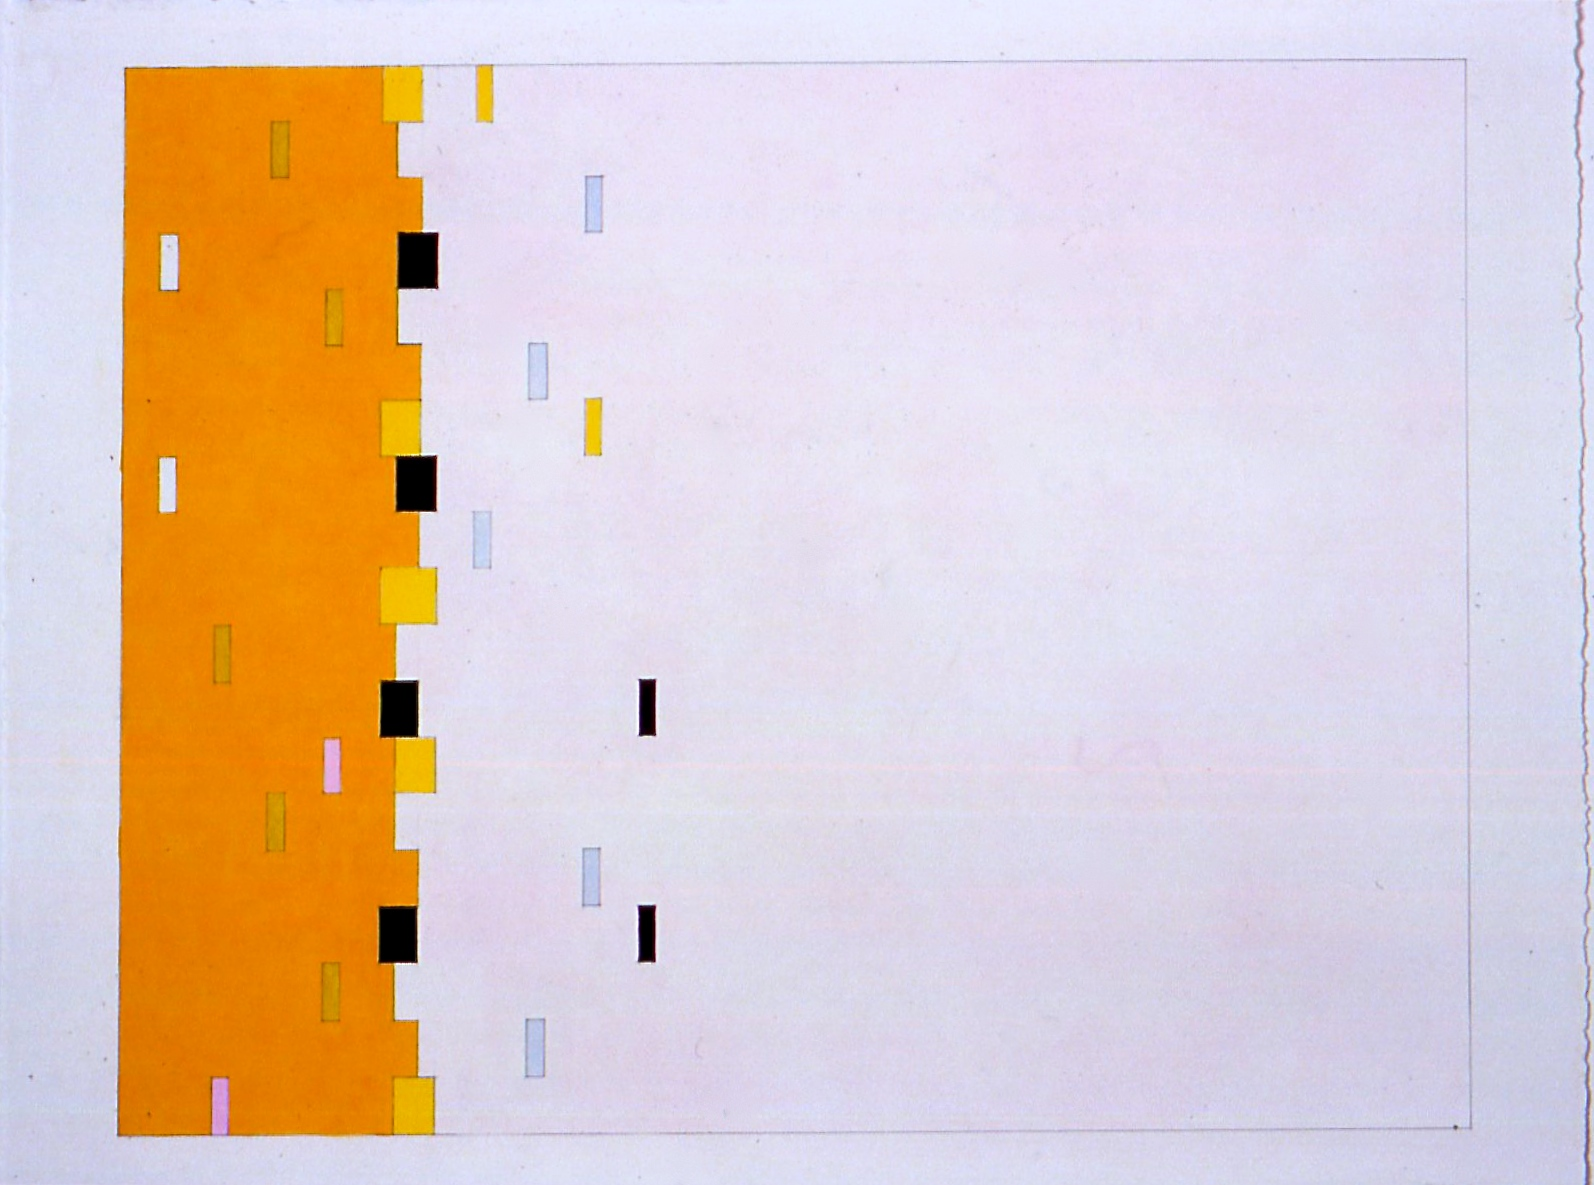 """Untitled (PG11), 2002, 20 3/16""""x25 15/16"""" (image), 23x30 1/2"""" (paper)"""